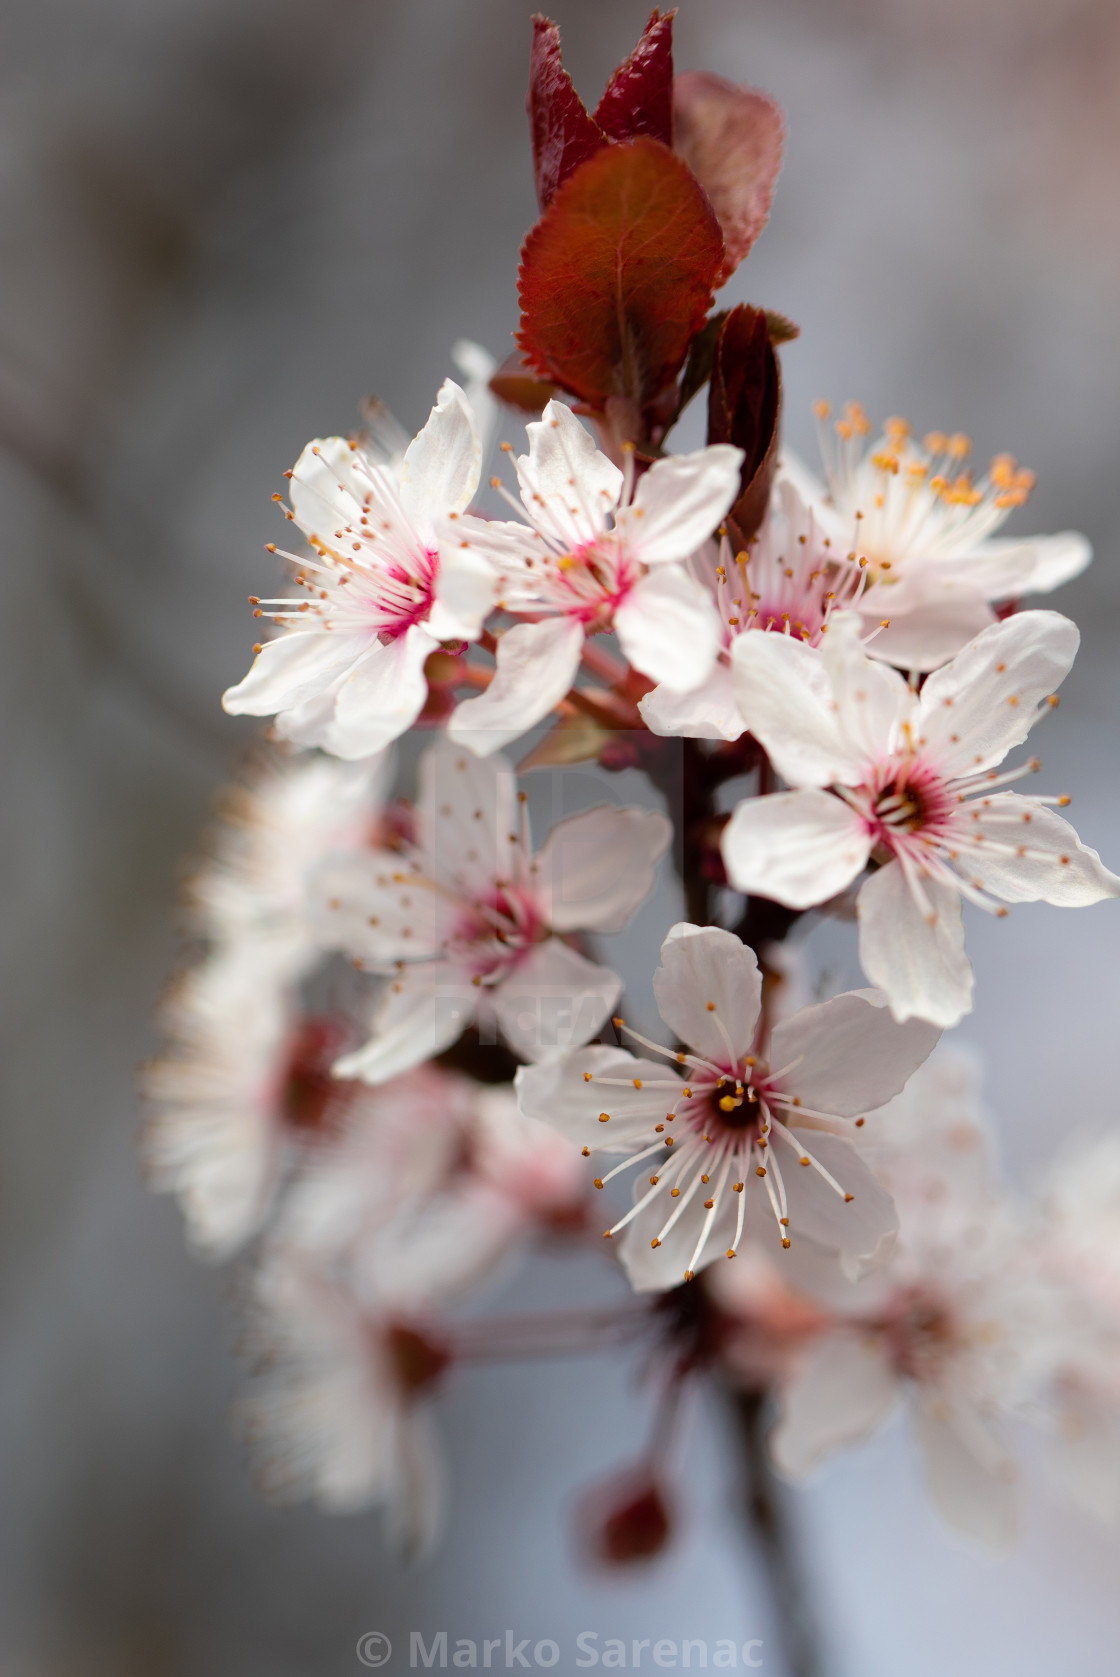 Blossom  Bokeh  Flowers  Cherry  Tree  Spring - License, download or